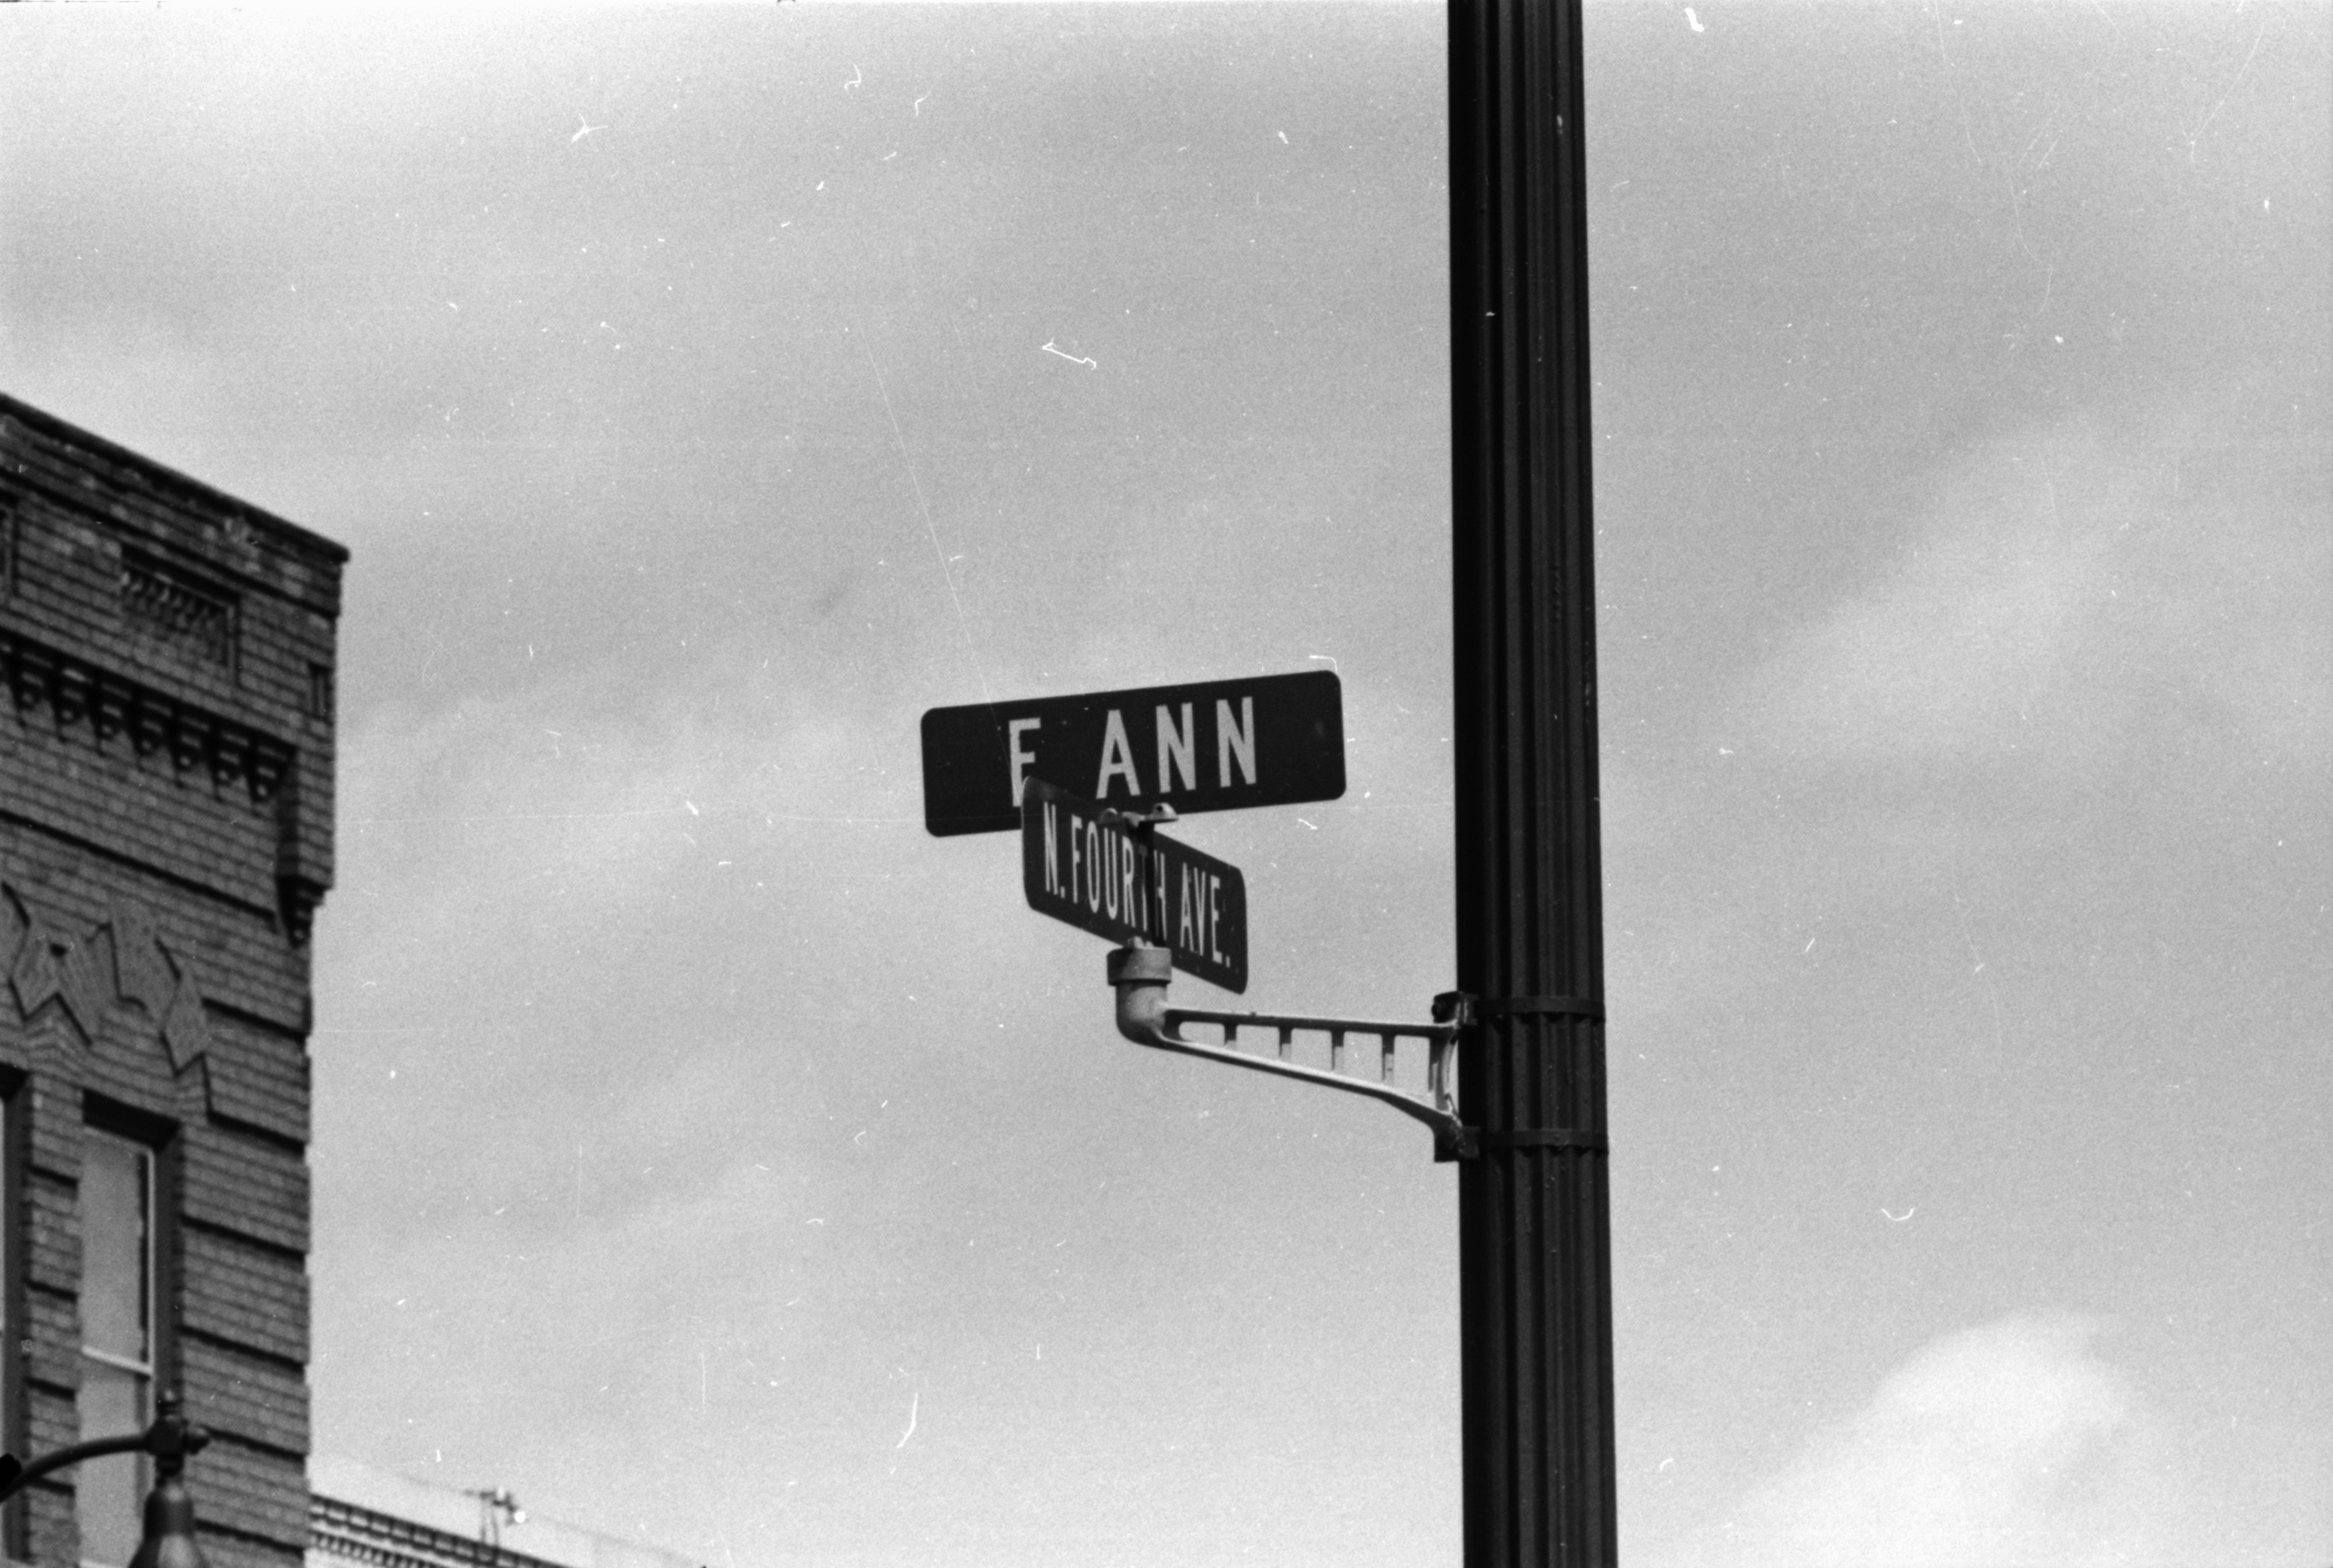 Street Sign, E. Ann St. and N. Fourth Ave, May 1974 image